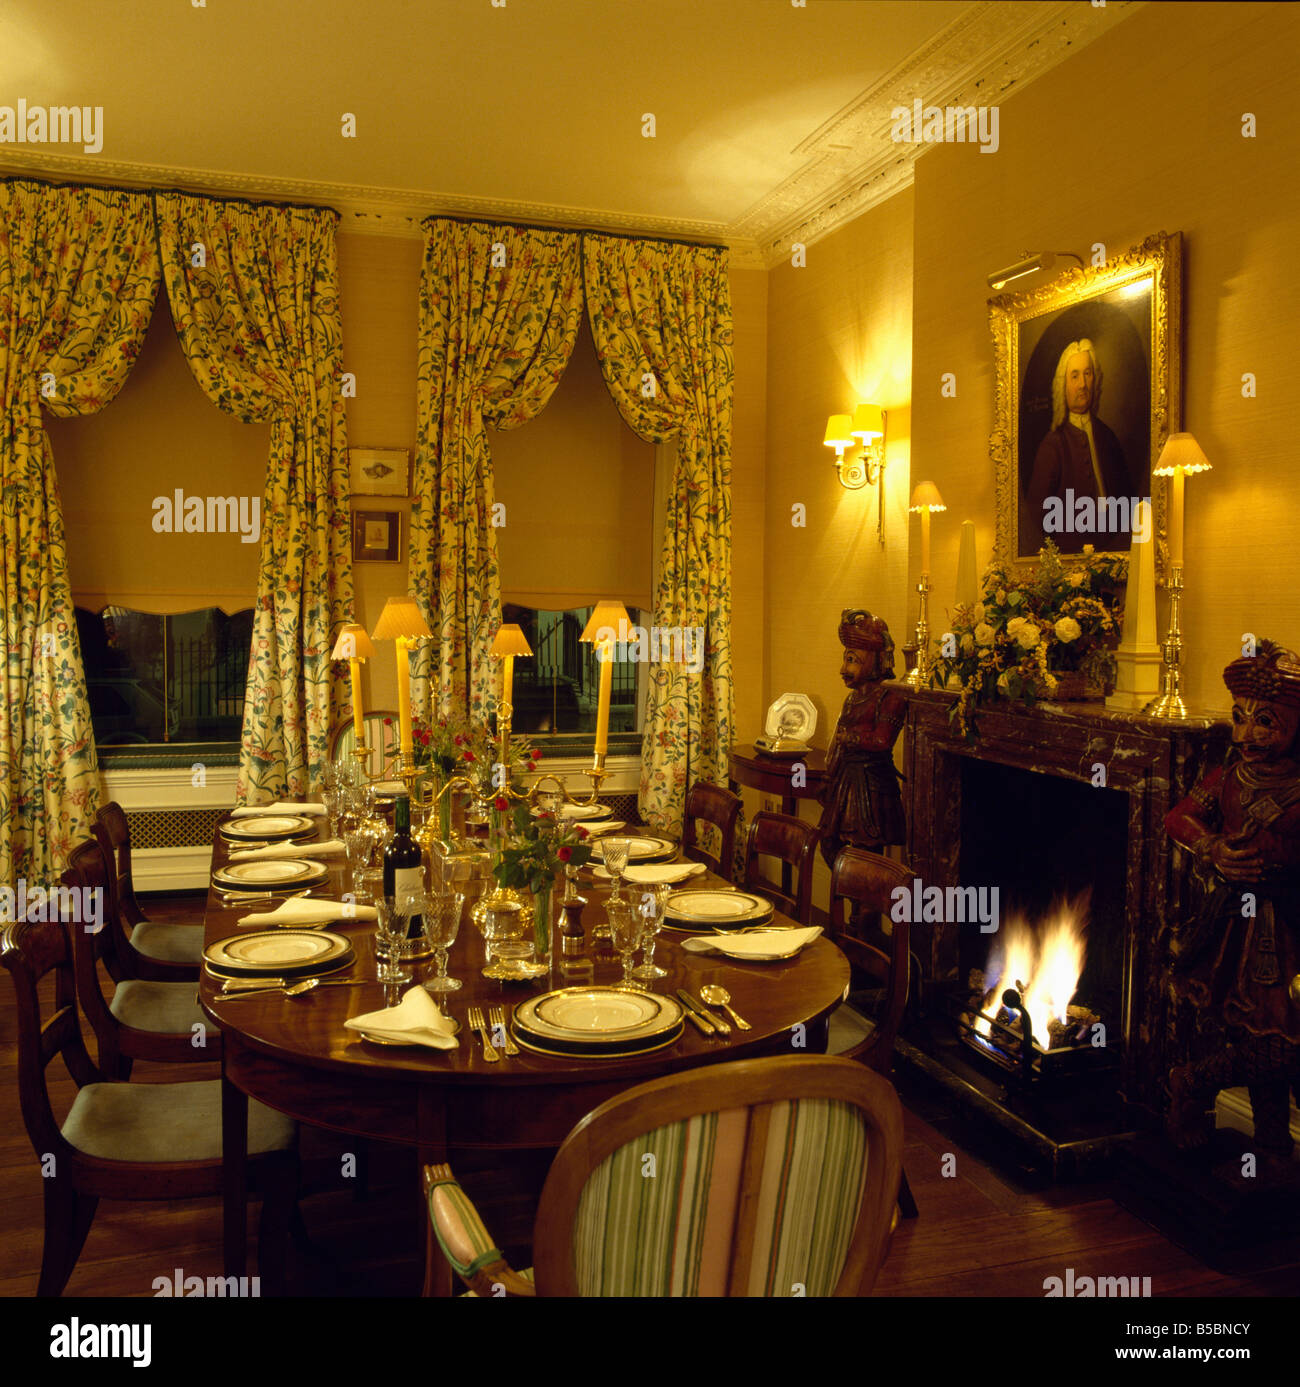 Antique Table In Yellow Dining Room With Blind And Floral Curtains On  Windows And Lighted Lamps Above Fireplace With Fire Lit